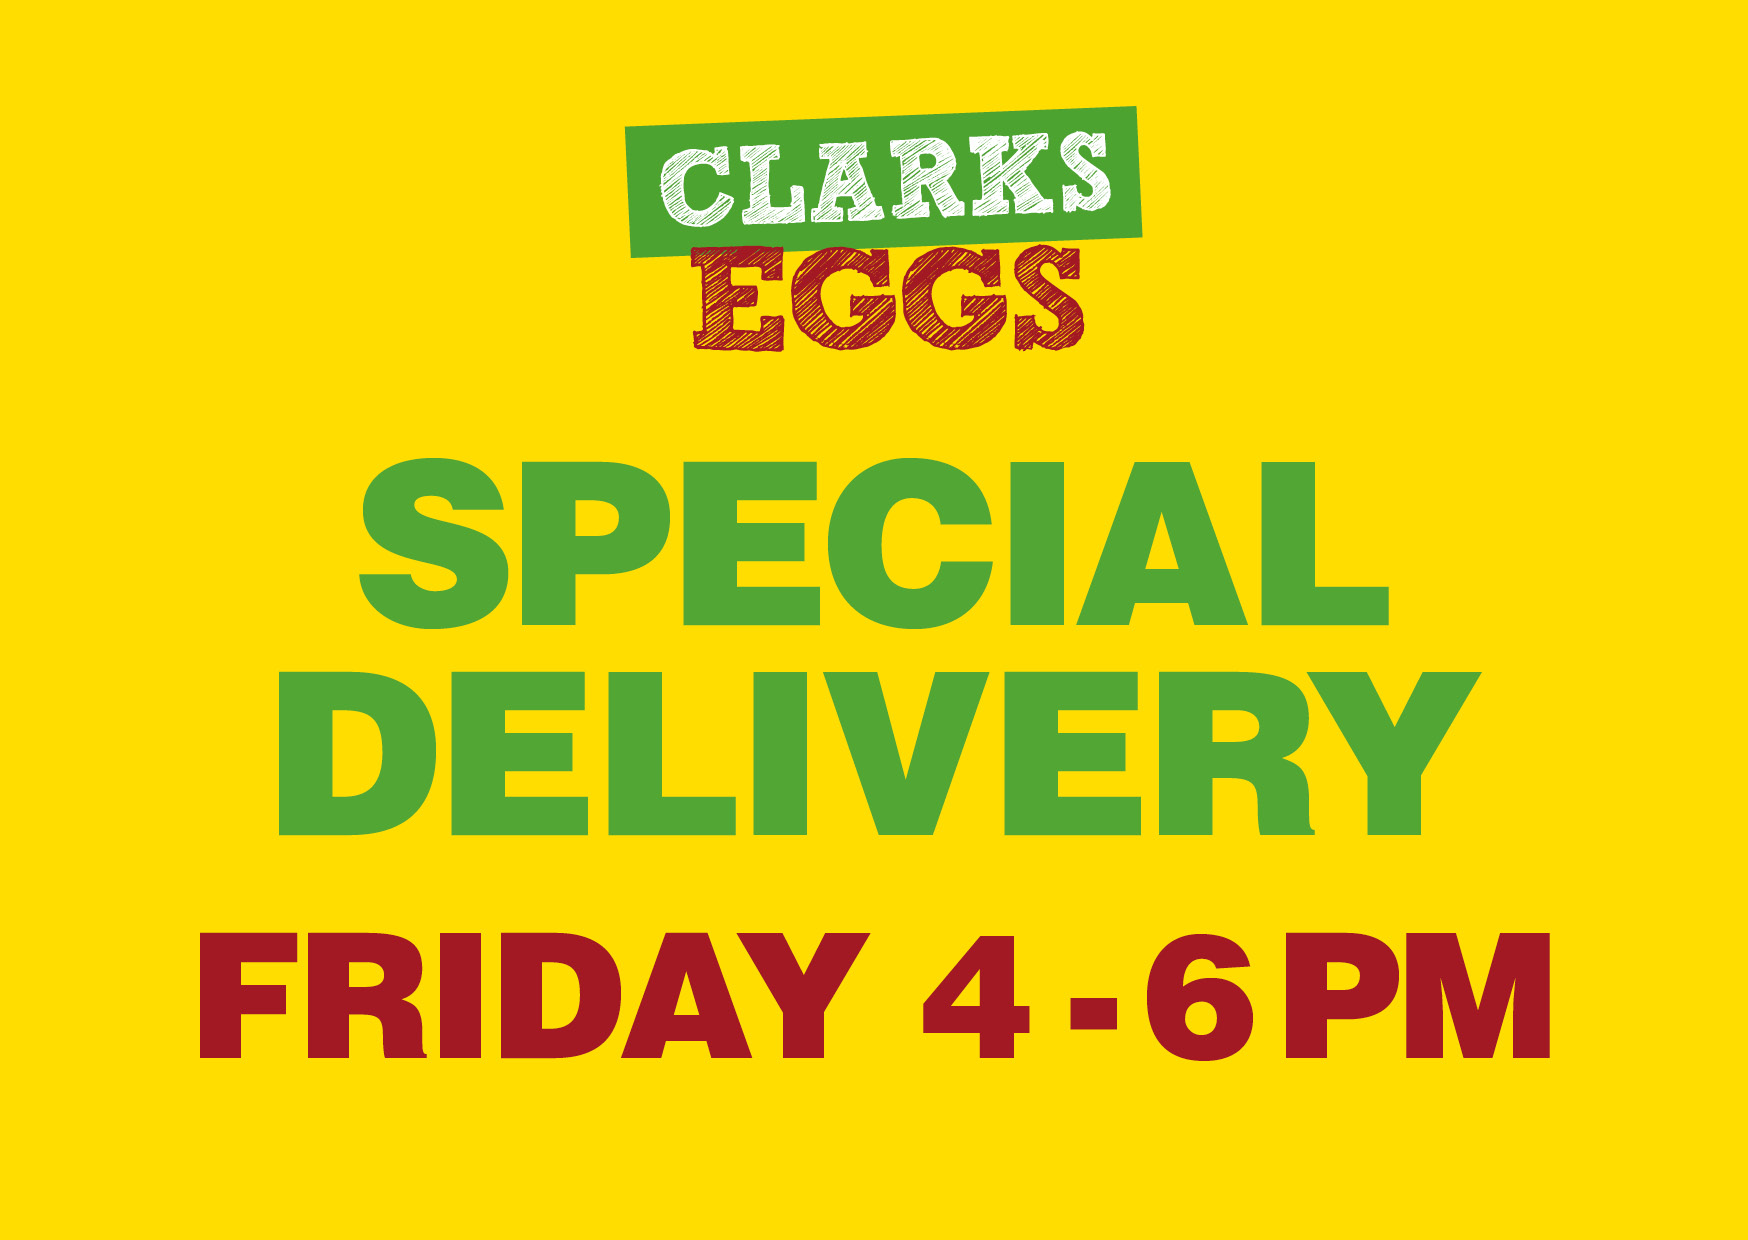 Friday 4-6pm delivery slot